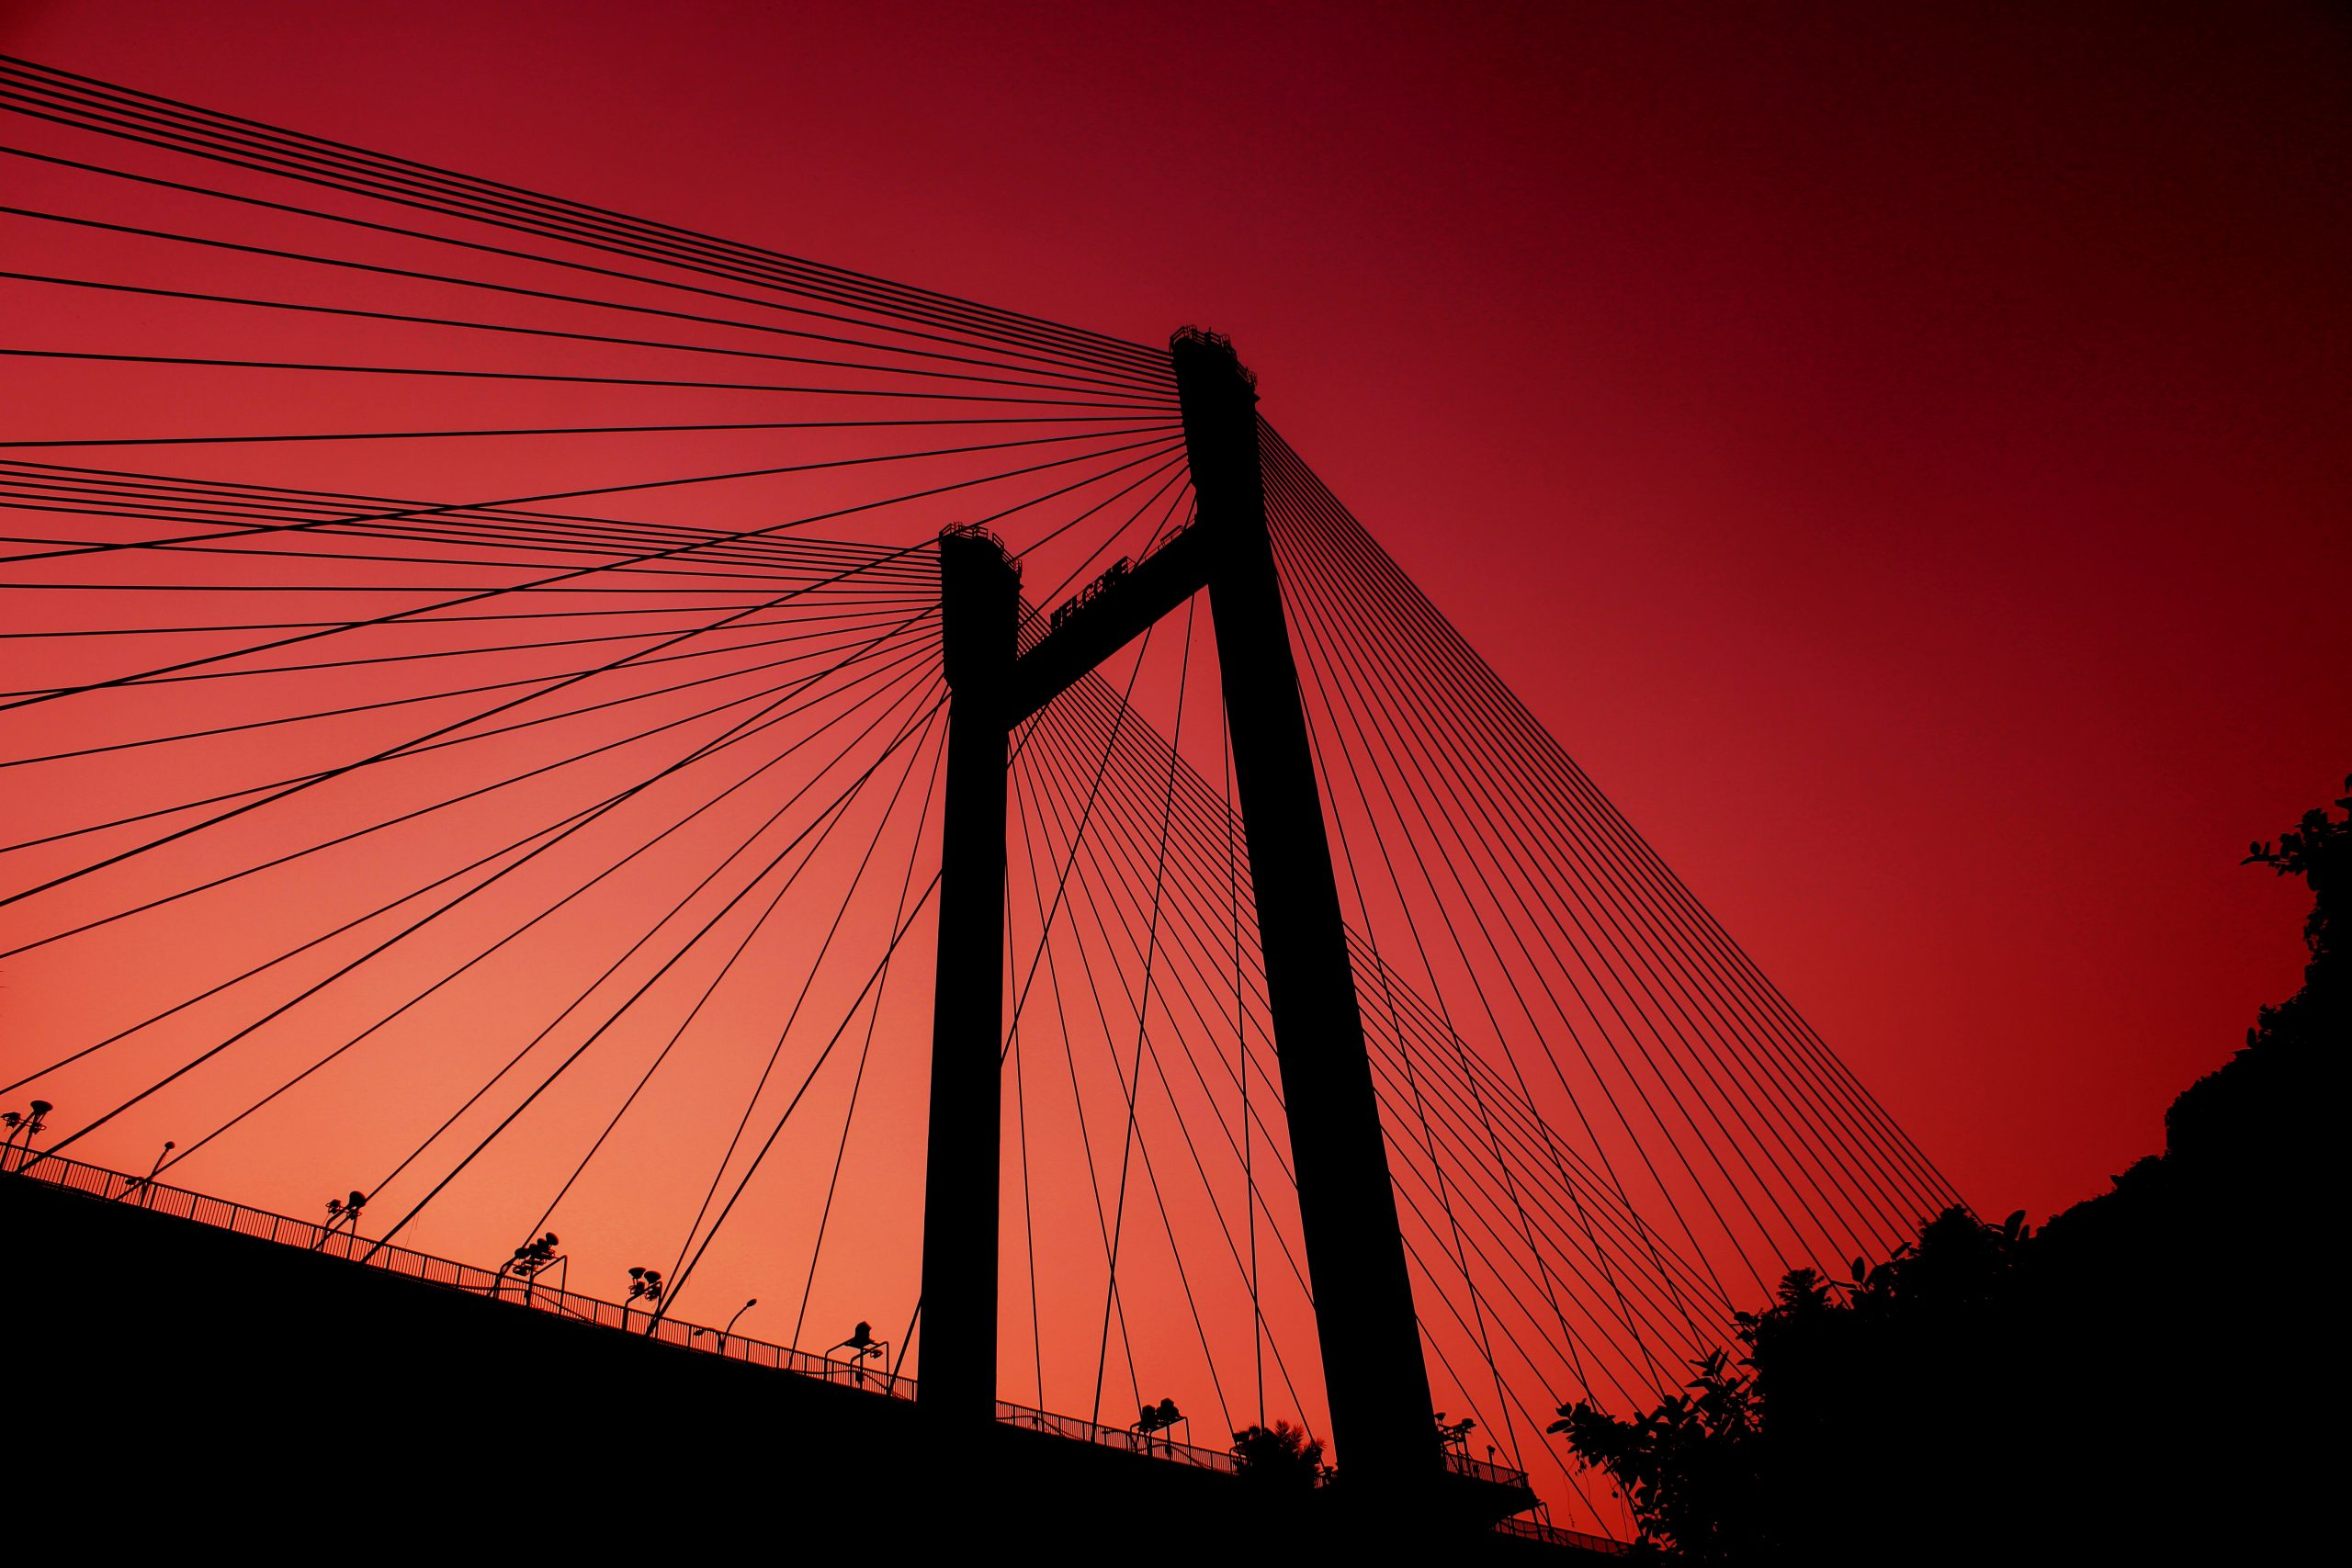 Howrah Bridge view in orange light